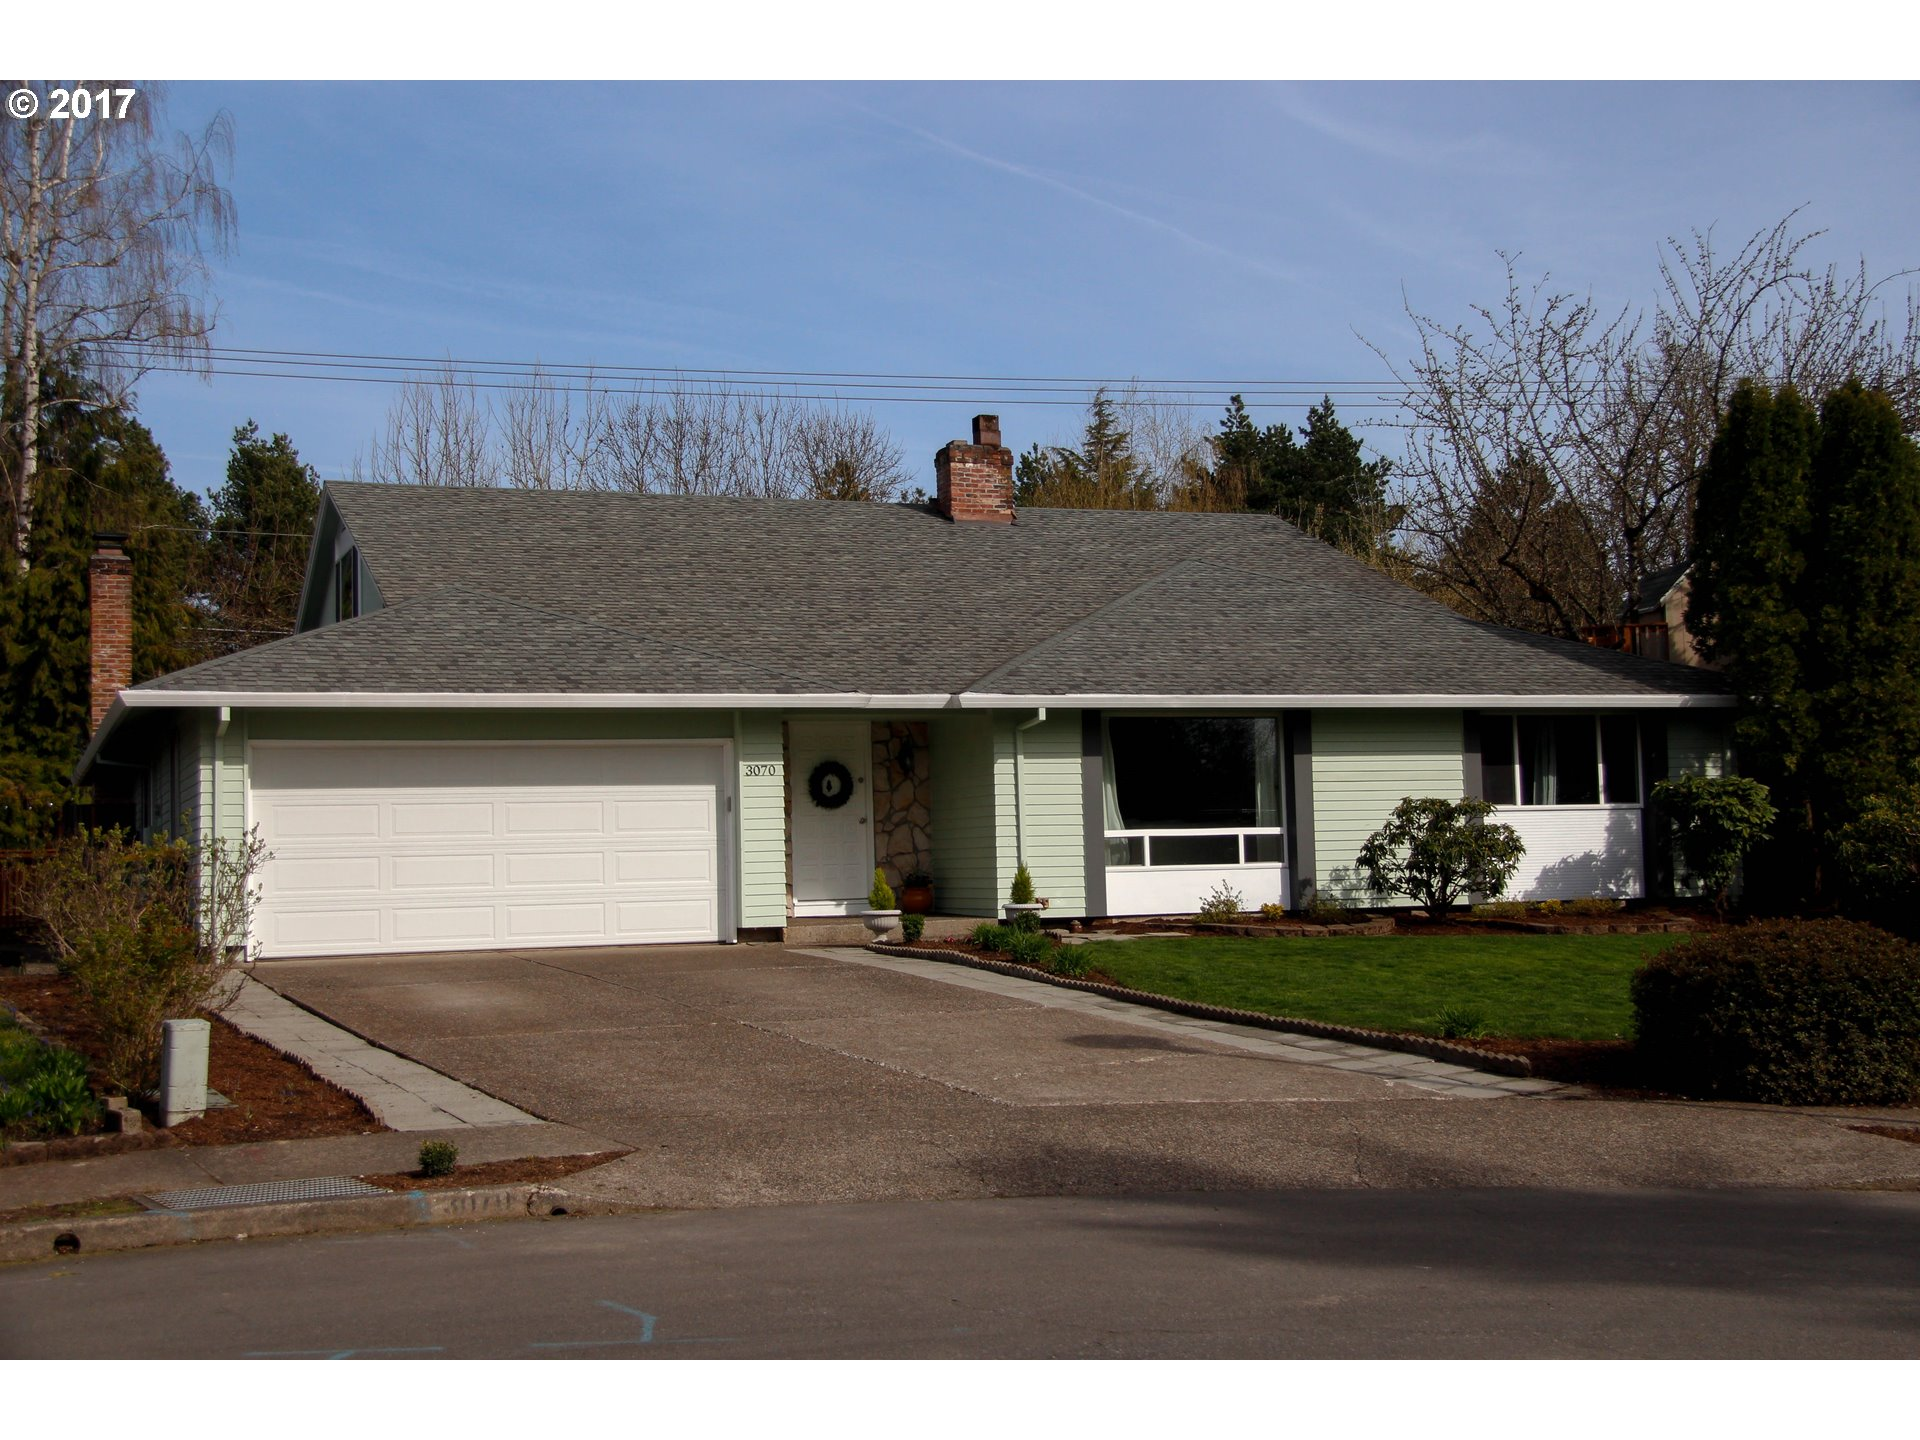 3070 NW 144TH AVE, Beaverton, OR 97006